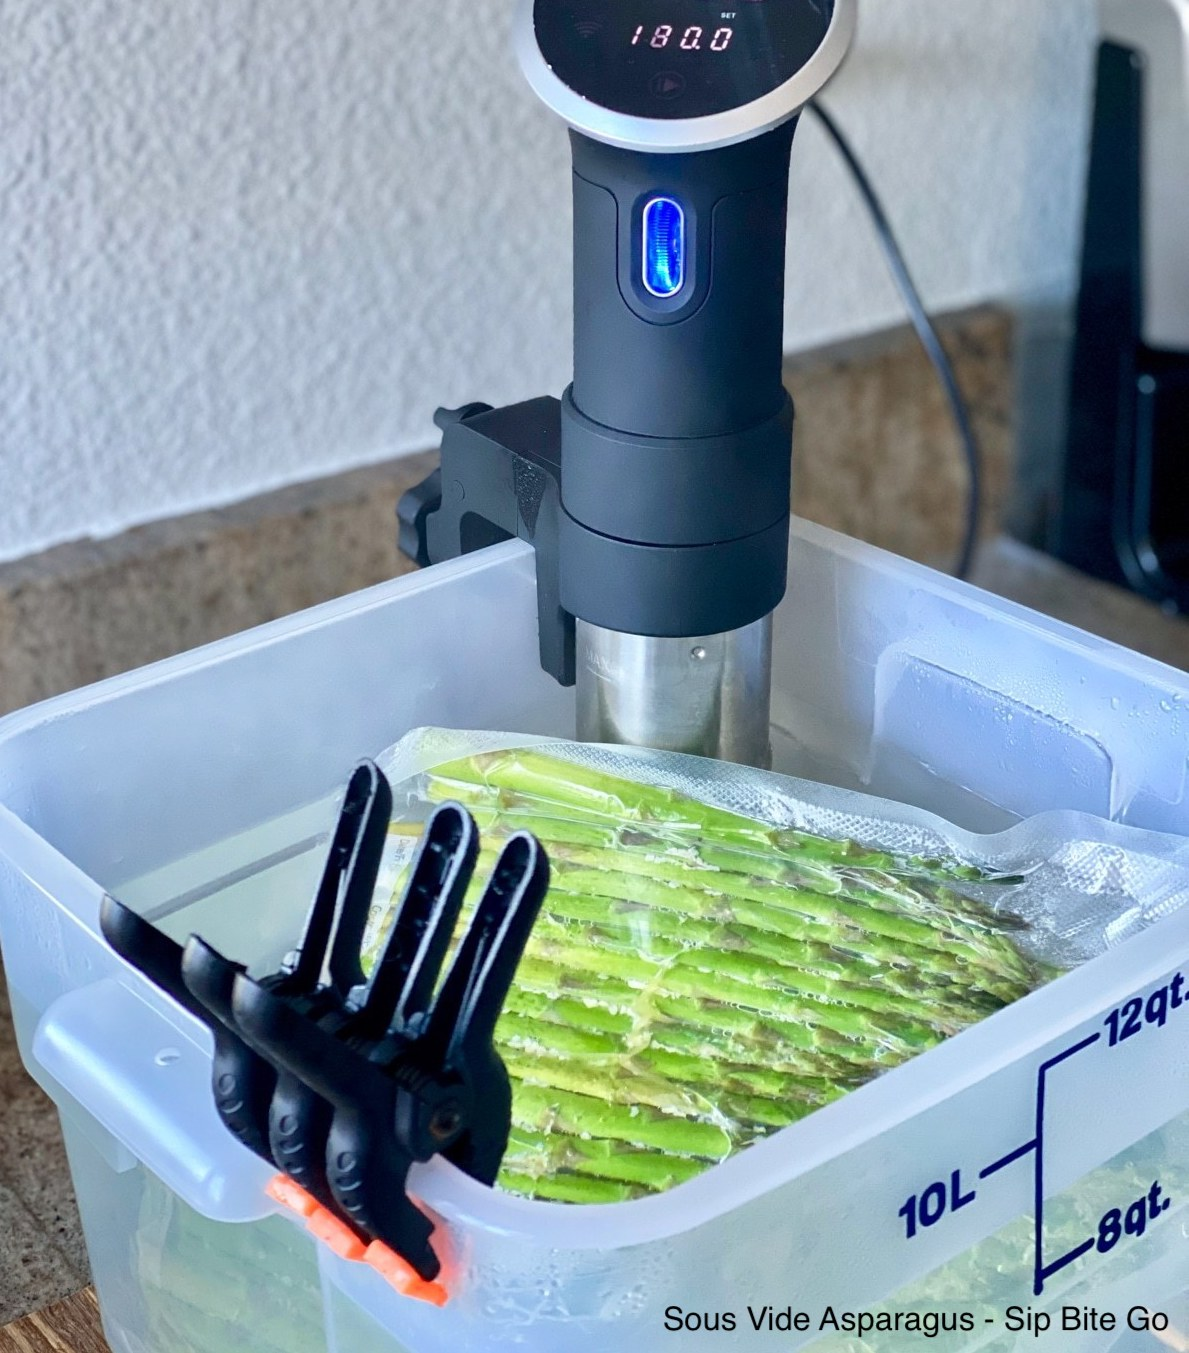 sous vide asparagus from sip bite go